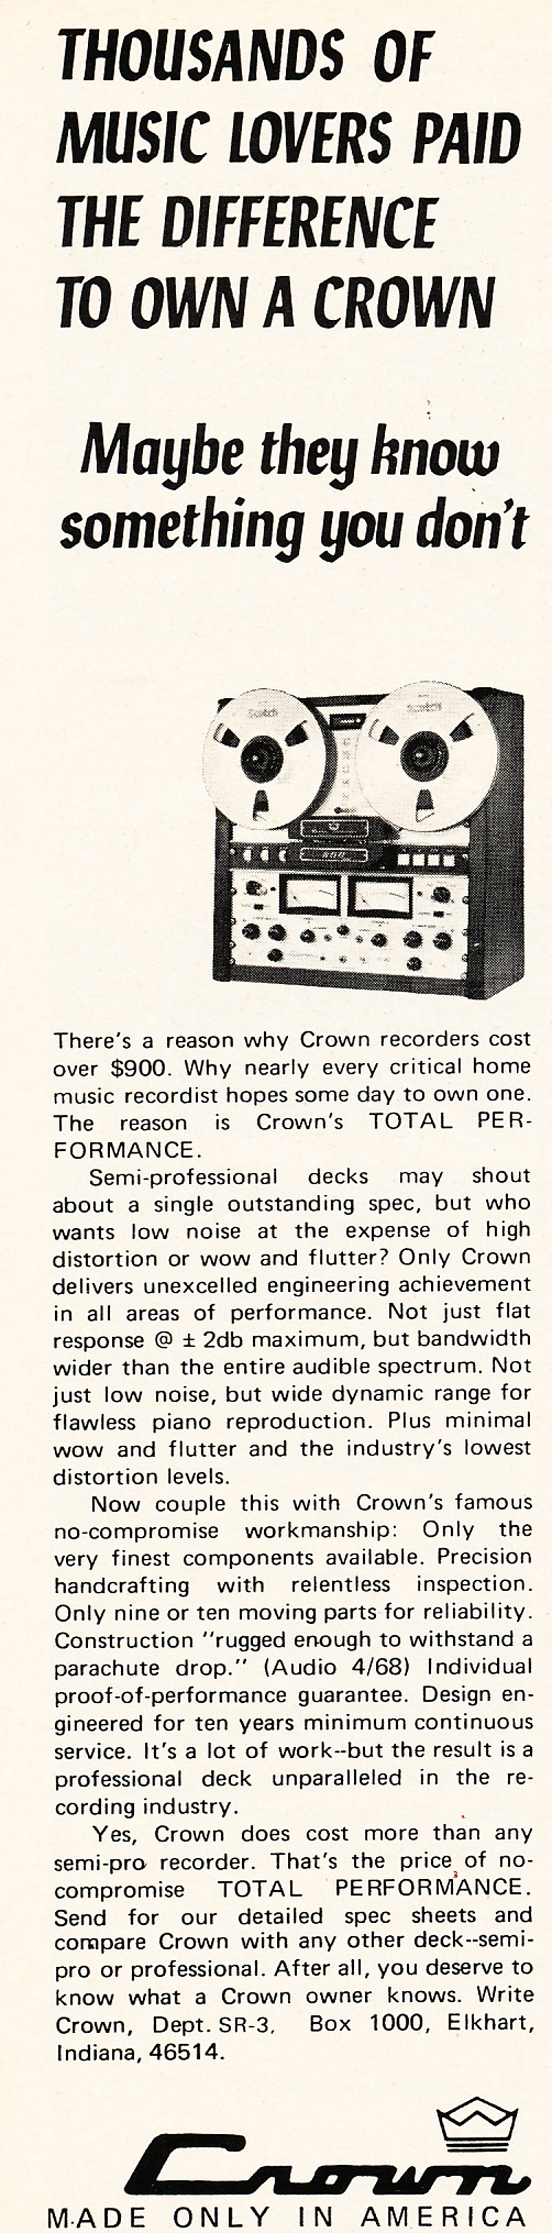 1971 ad for Crown professional reel to reel tape recorders in Reel2ReelTexas.com's vintage recording collection